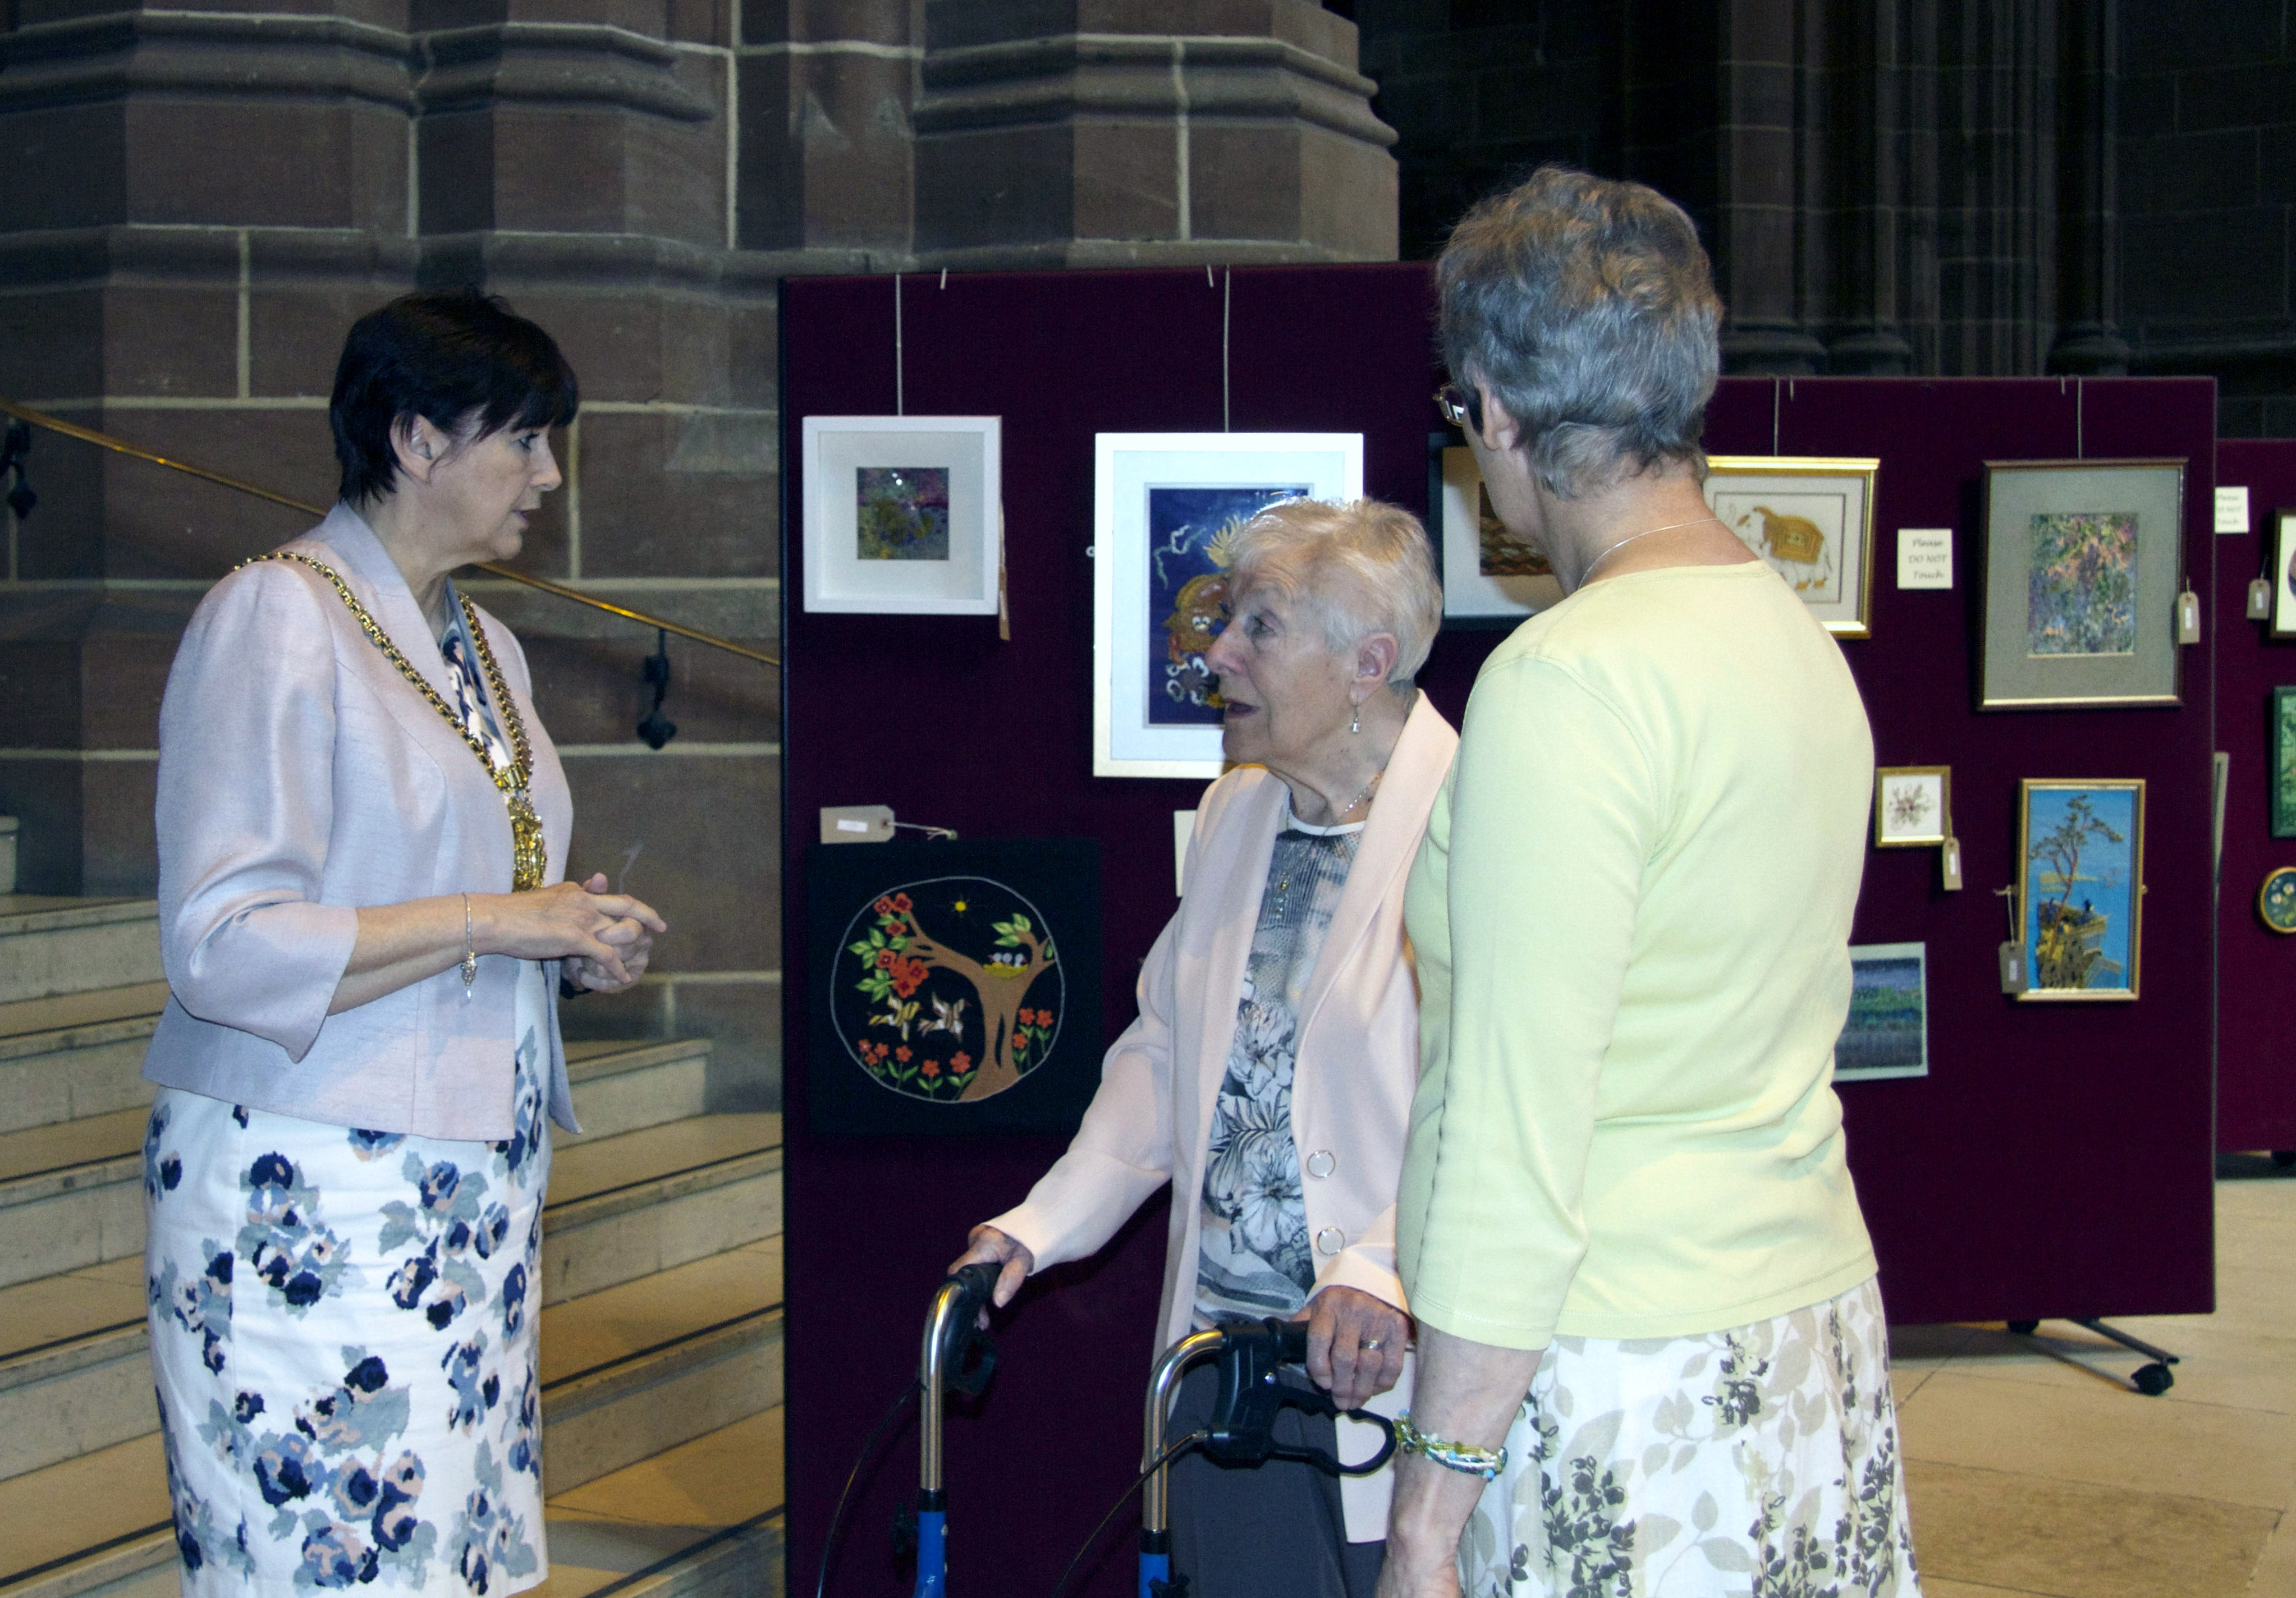 Lord Mayor of Liverpool Cllr Roz Gladden with Margaret gold and Kim Parkman at 60 Glorious Years exhibition, Liverpool Cathedral 2016